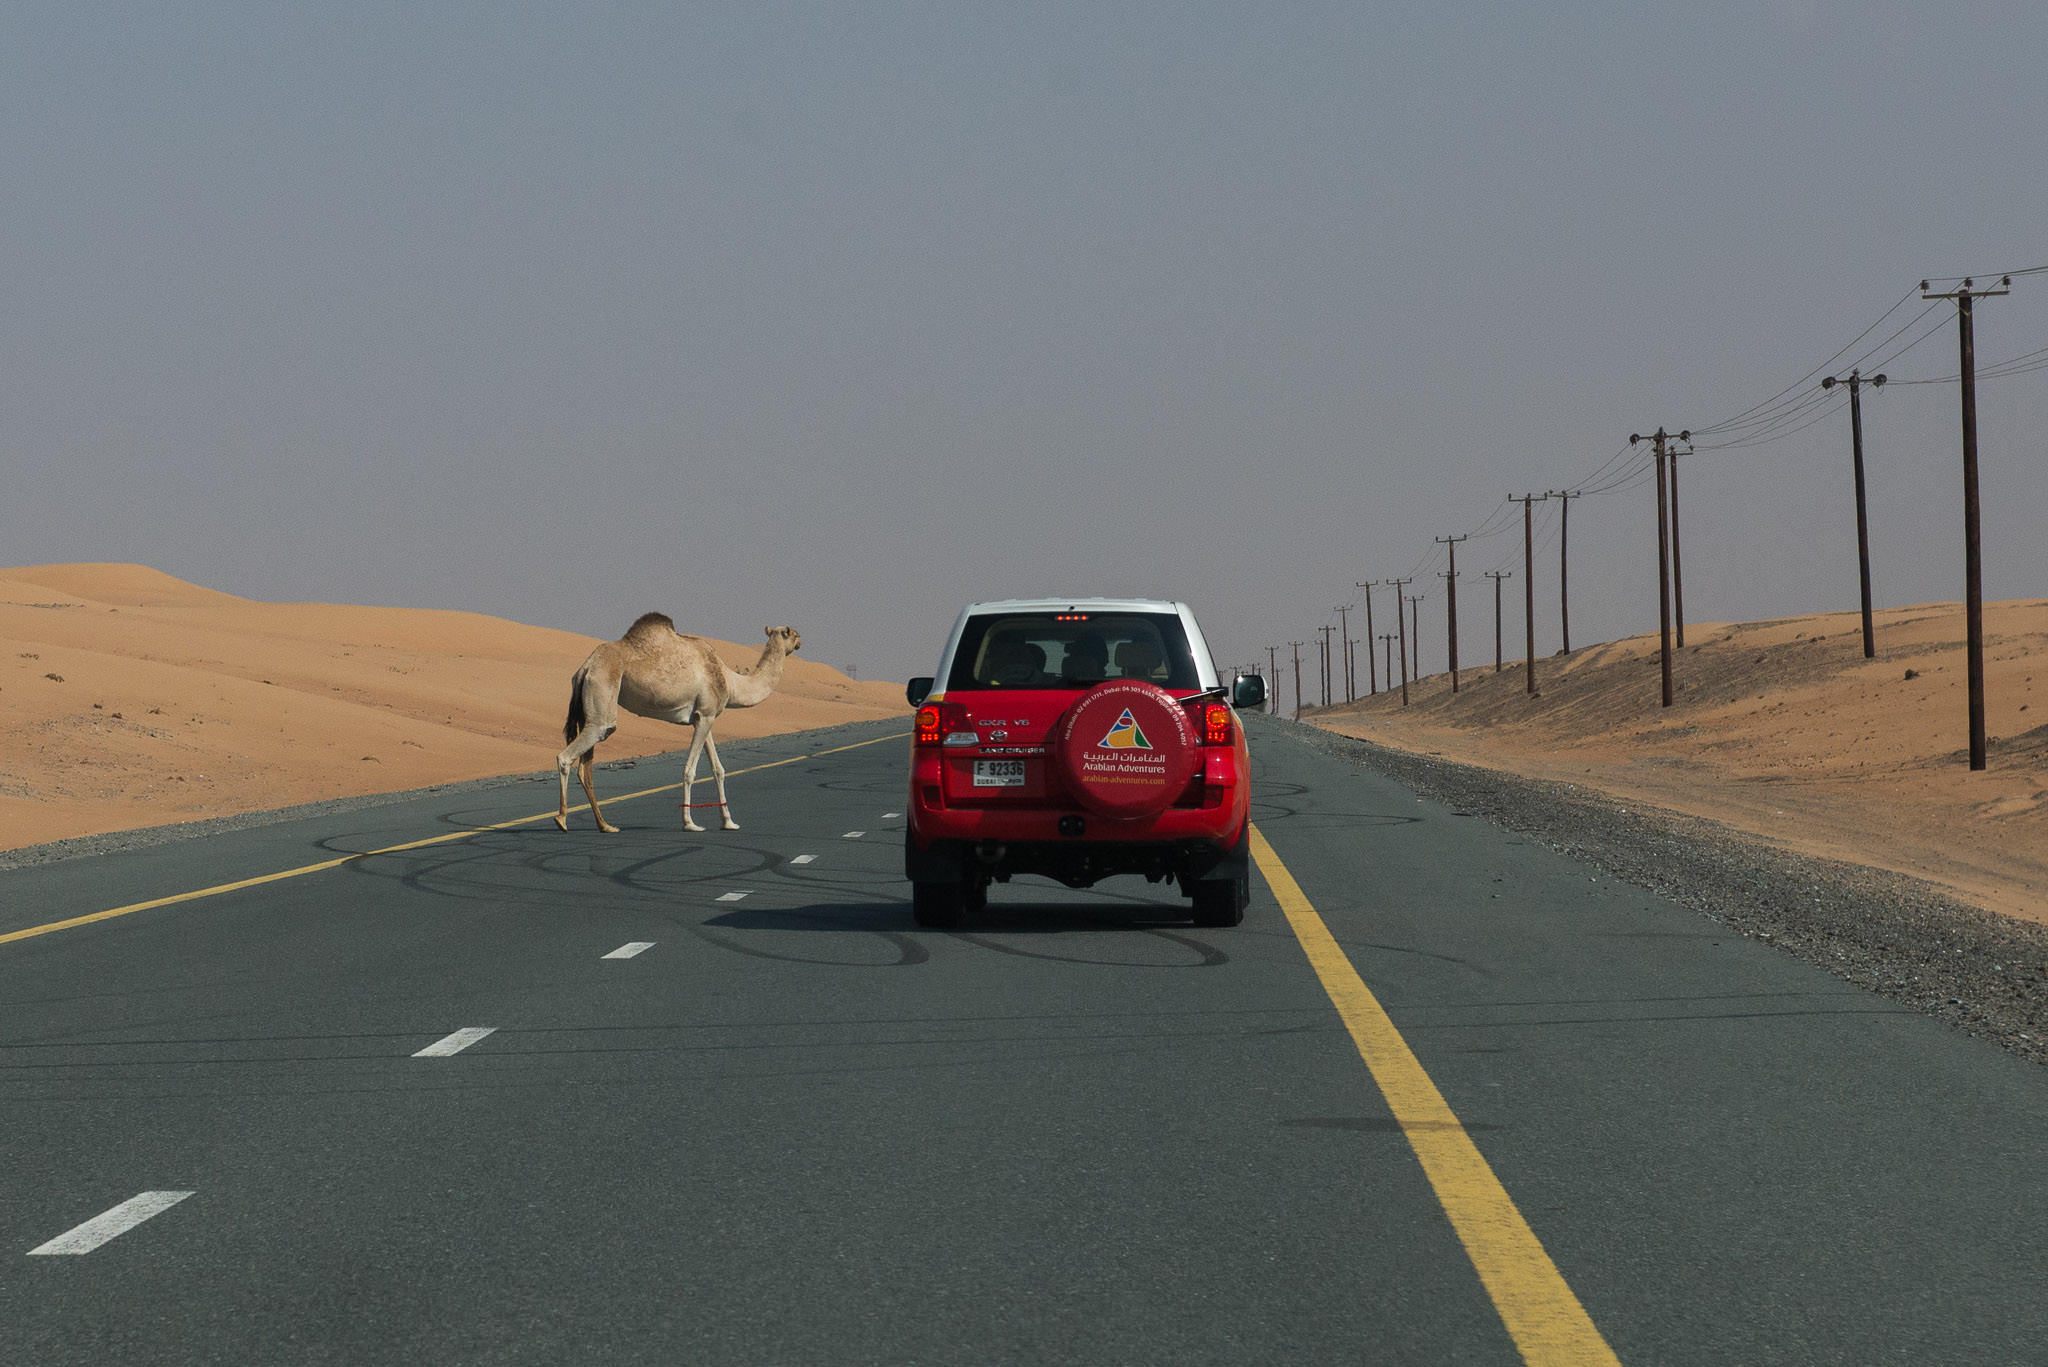 Close encounters of the camel kind